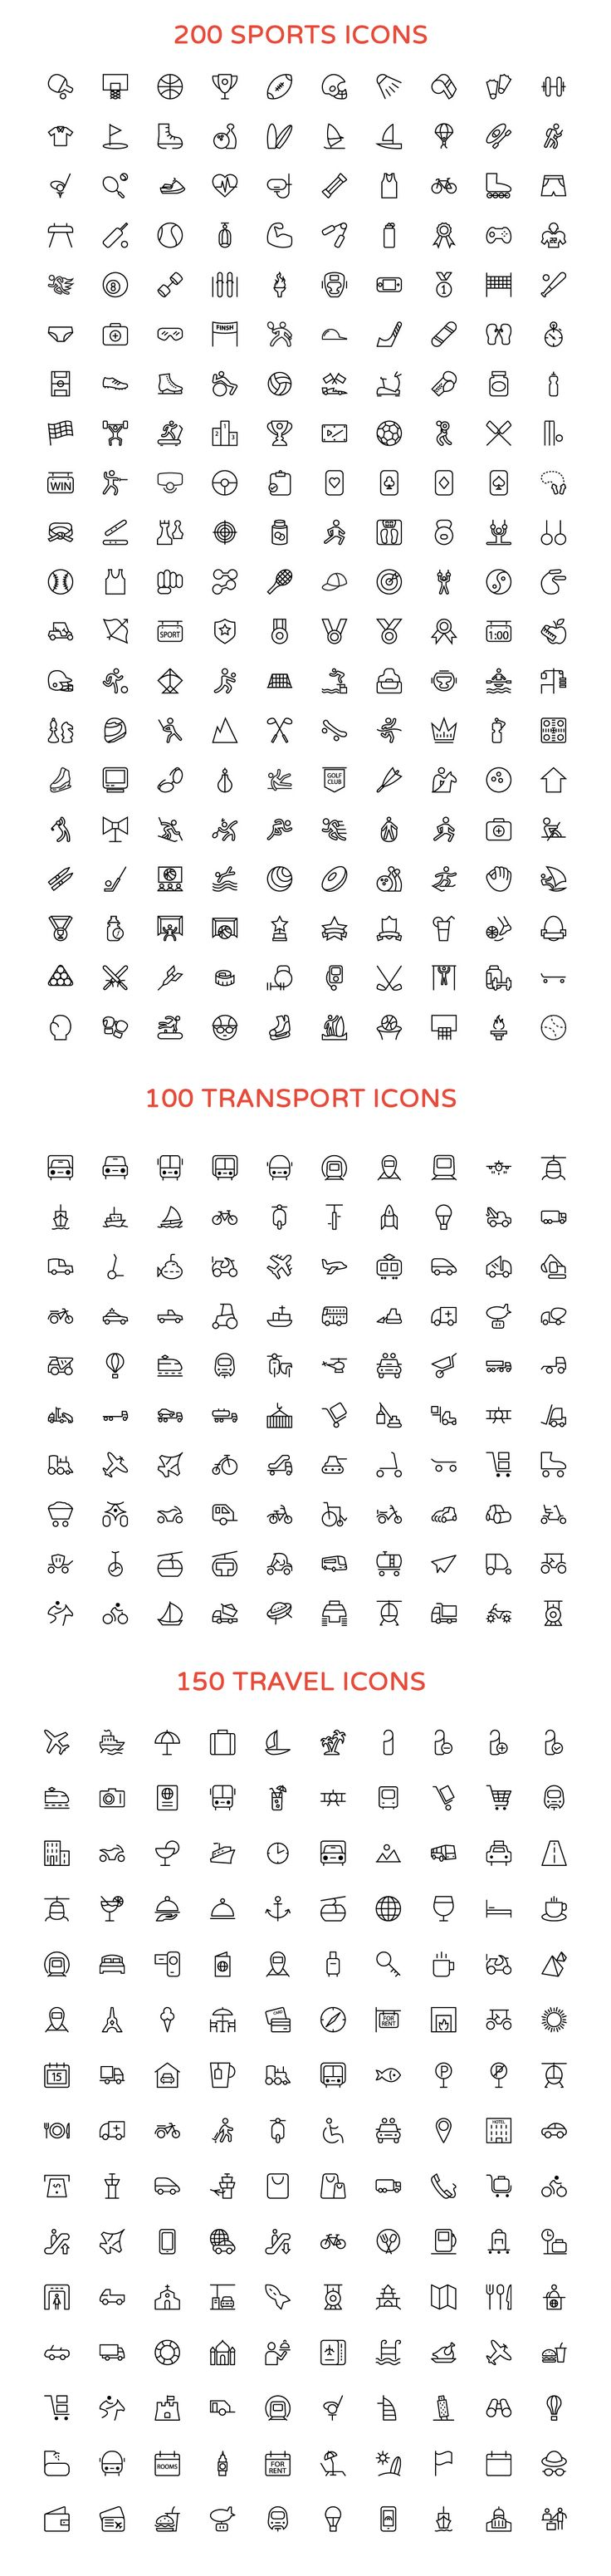 Here is a collection of some perfectly lined 2800+ Vector Icons in an all-inclusive bundle #design Download: https://creativemarket.com/creativestall/176209-2800-Line-Vector-Icons-Bundle?u=ksioks